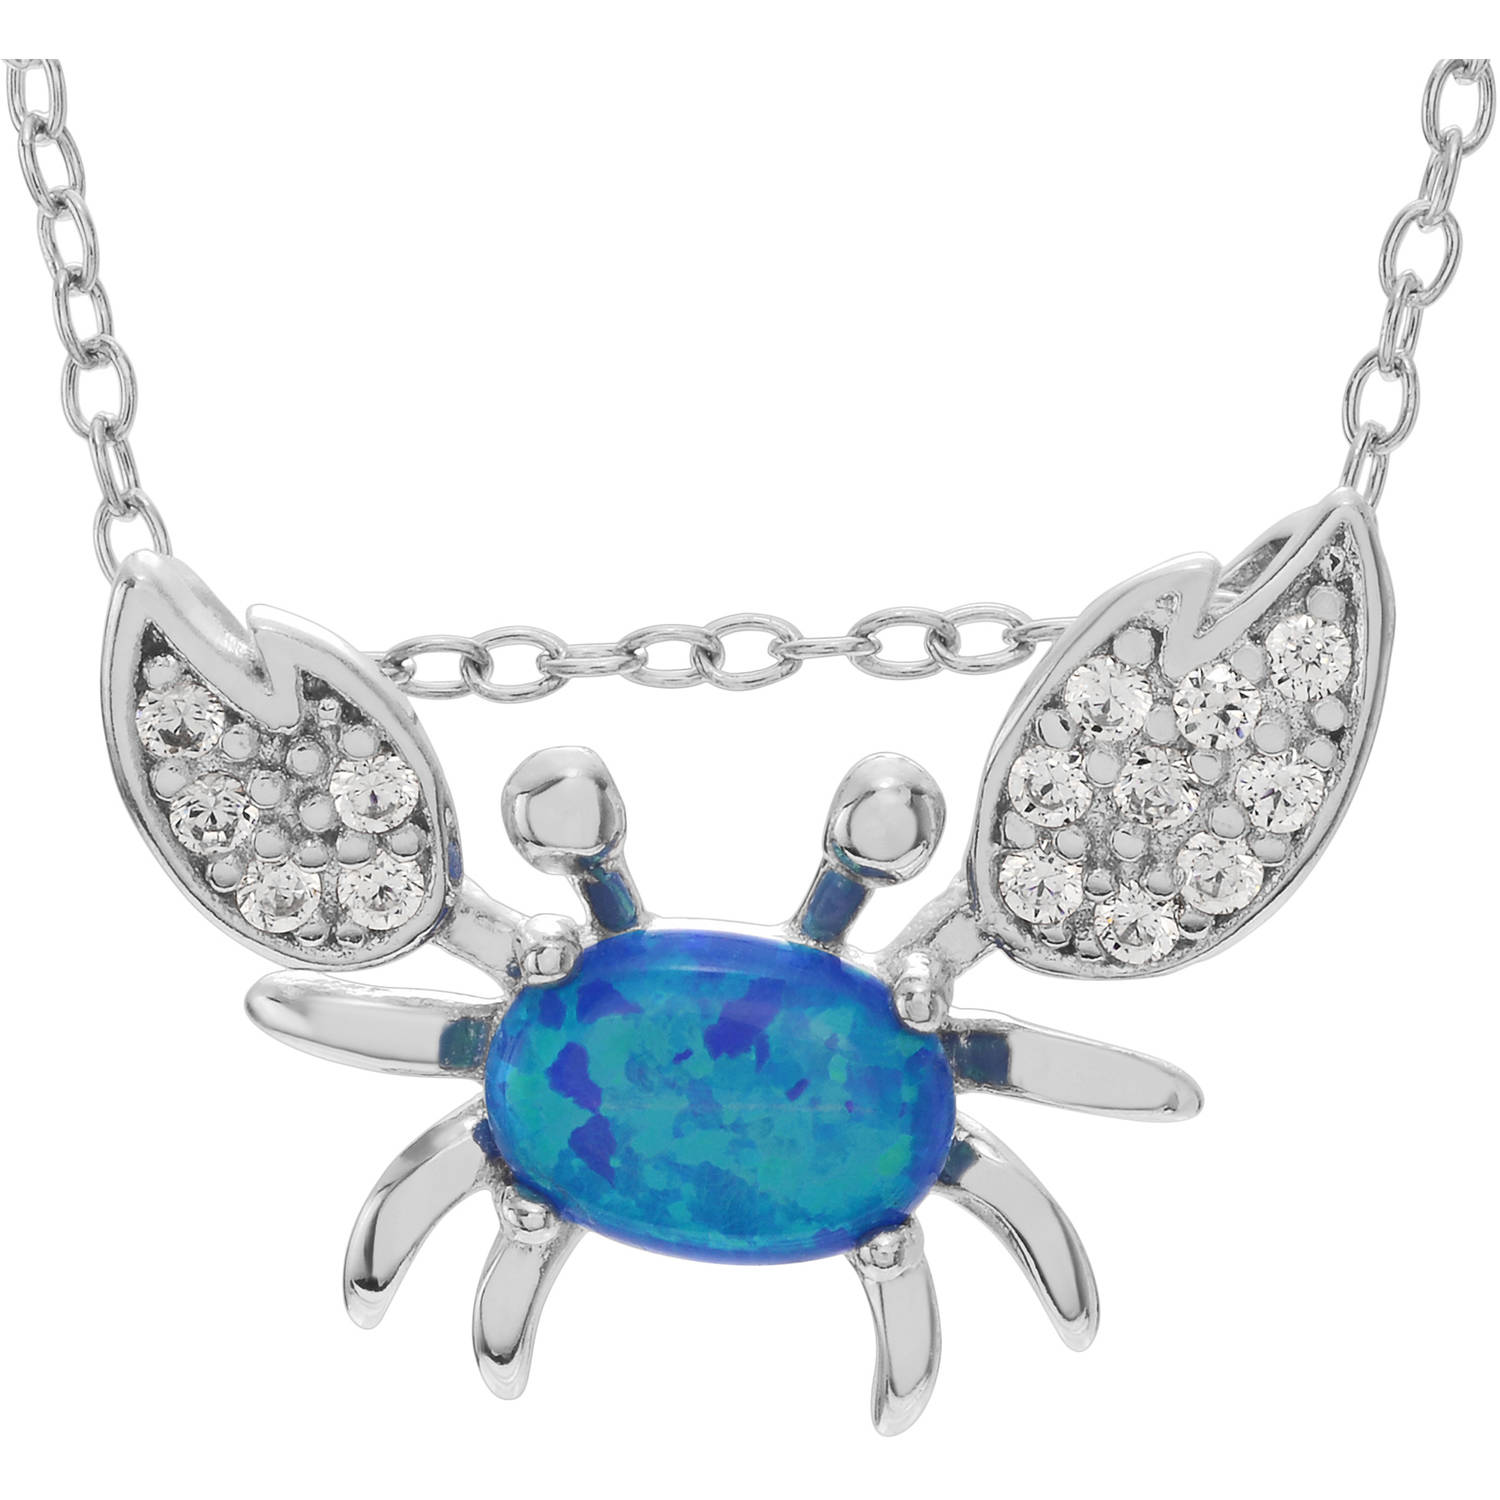 Brinley Co. Women's Blue Opal and CZ Accent Sterling Silver Crab Pendant Fashion Necklace